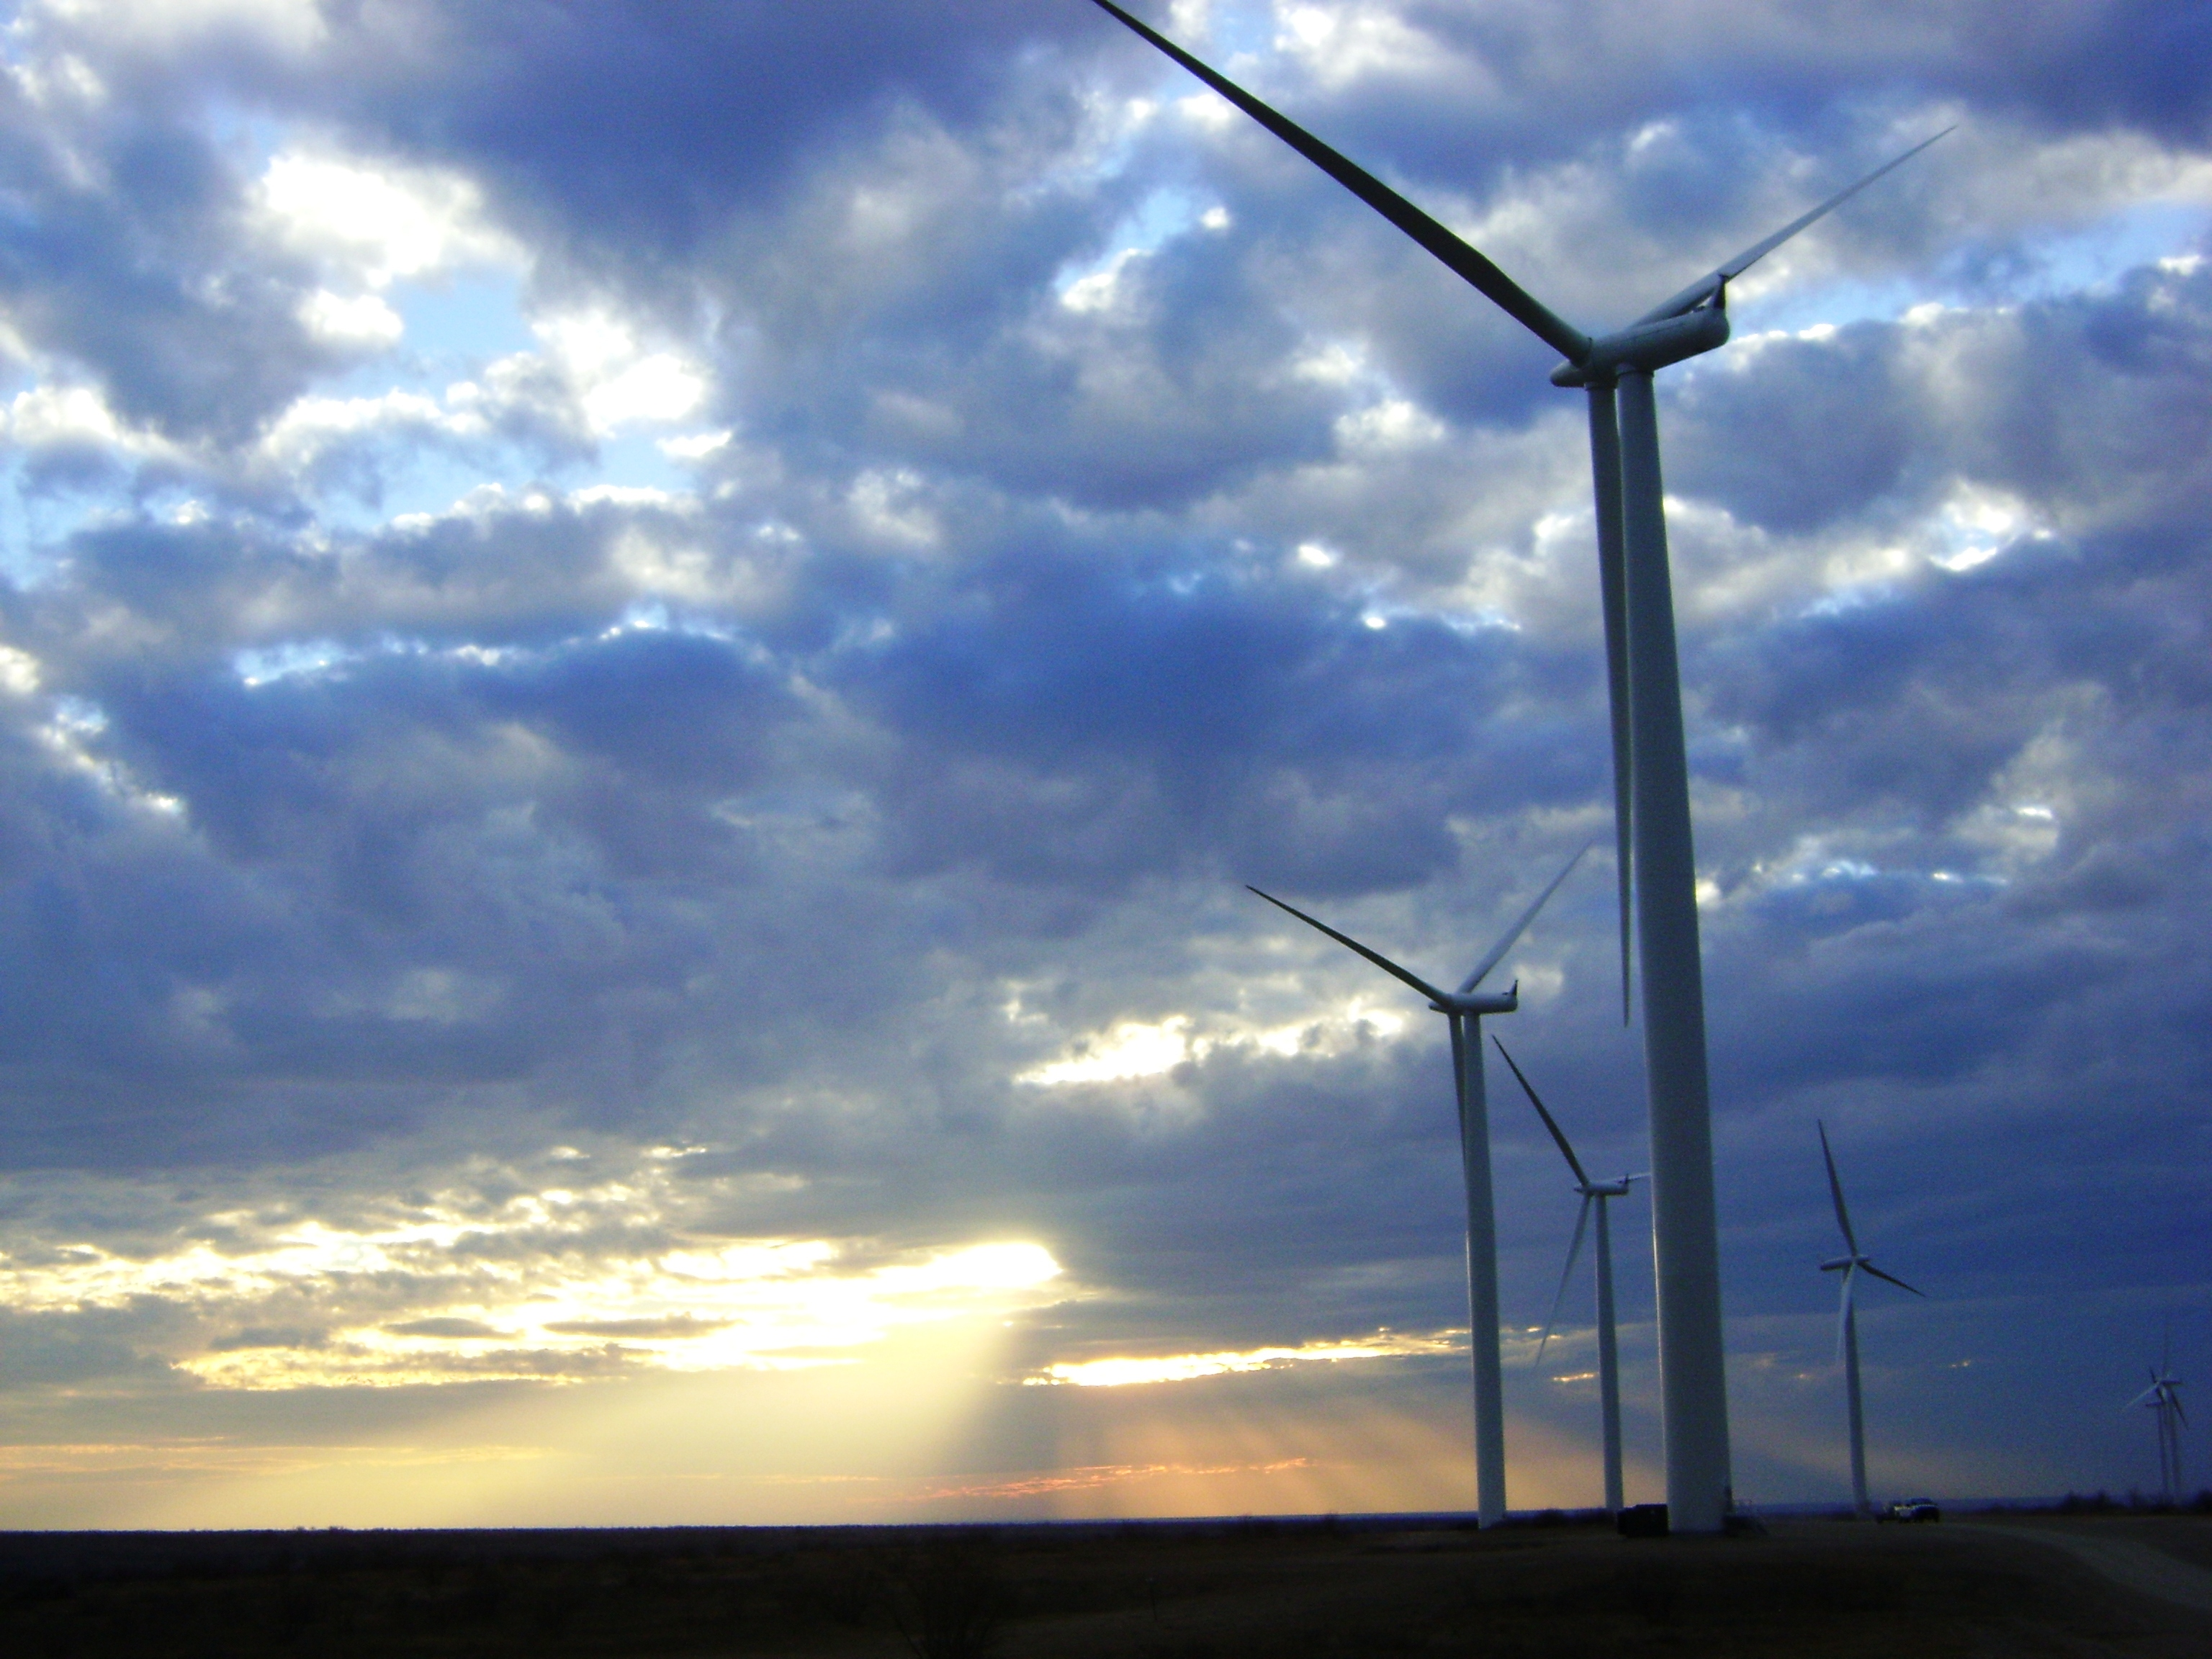 Sunset over Windmills on a field at the Hackberry windfarm in Texas